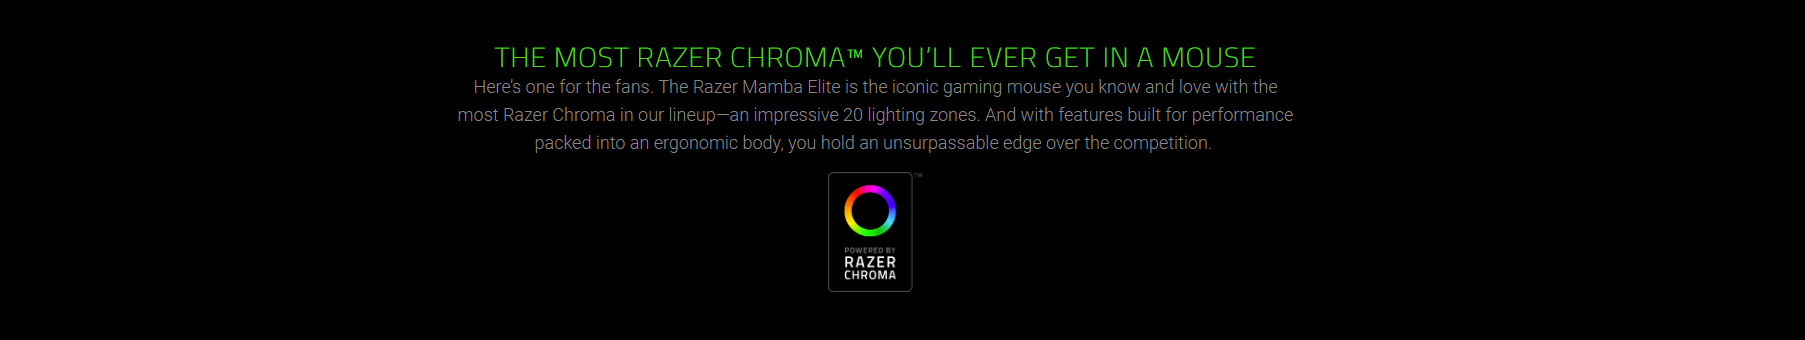 Razer Mamba Elite 5G Advanced Optical Sensor with true 16,000 DPI Advanced  Ergonomics with Improved Side Grips Hybrid On-Board Memory and Cloud